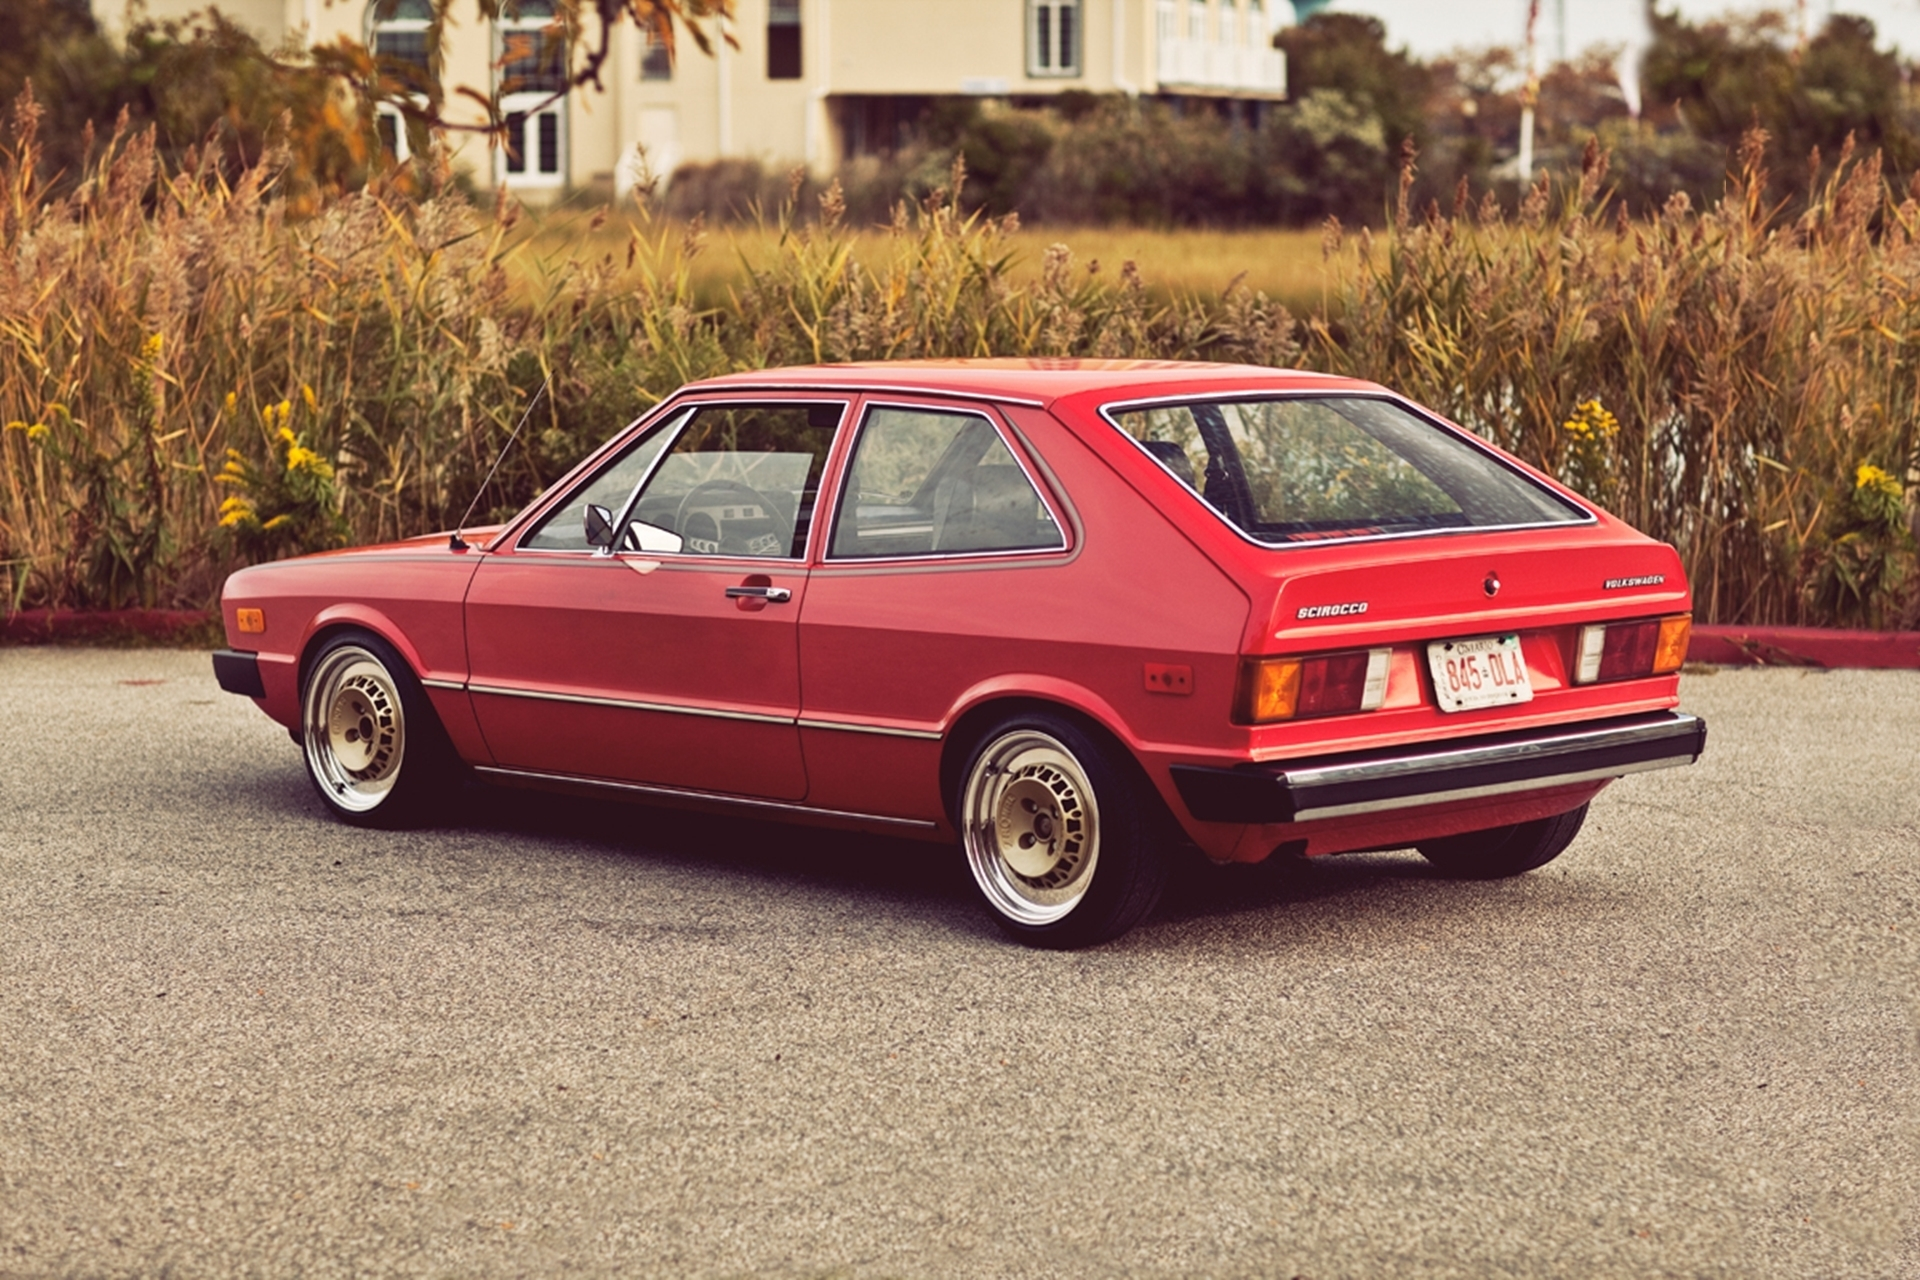 134431 download wallpaper Volkswagen, Cars, Back View, Rear View, Mk1, 1975, Vw, Scirocco screensavers and pictures for free